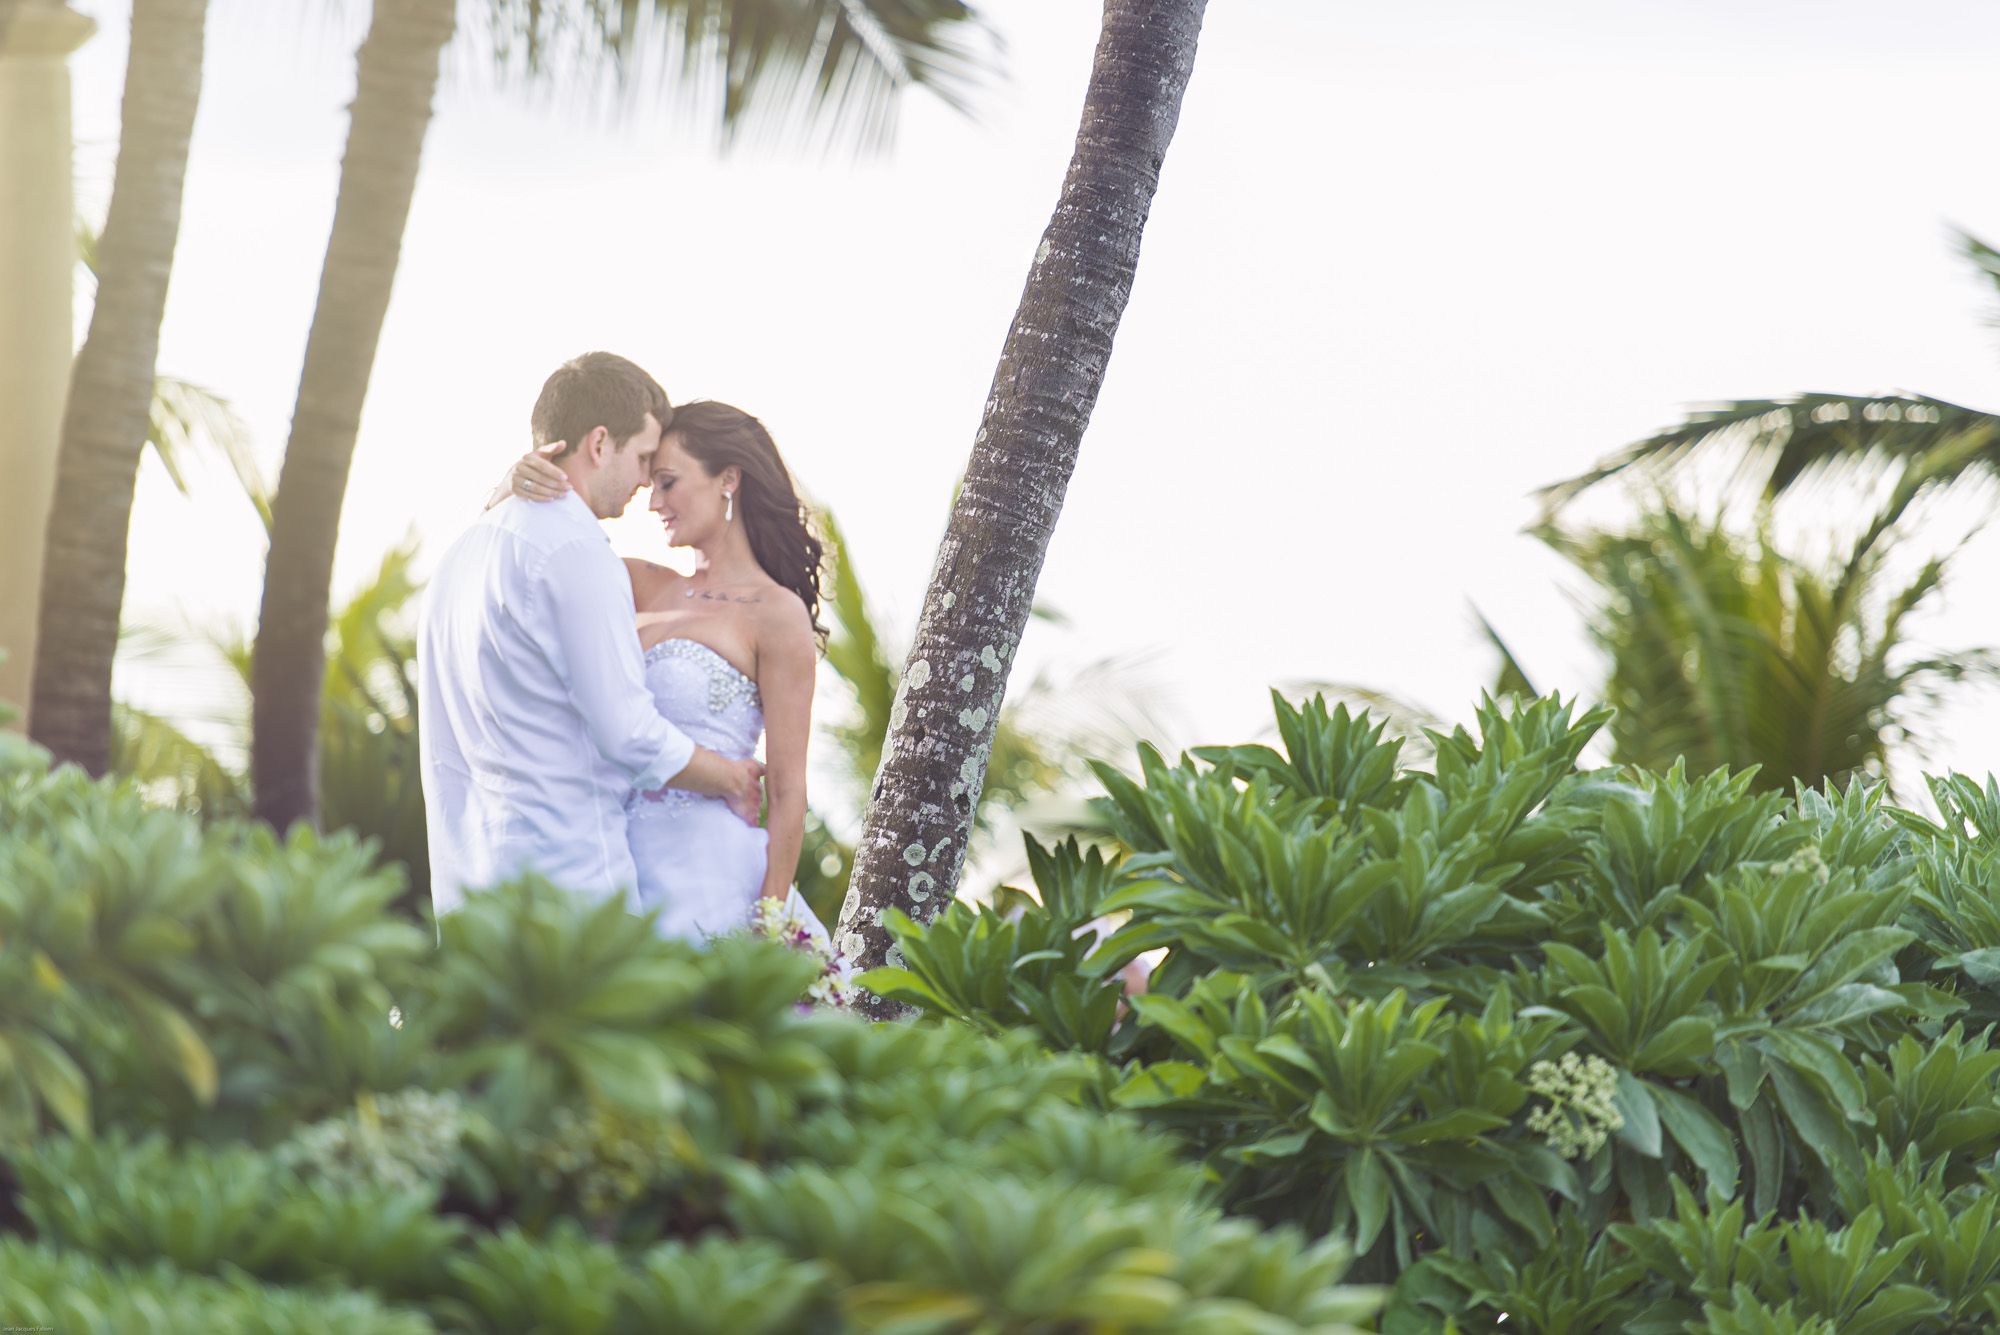 Justyna and Michael-138.jpg